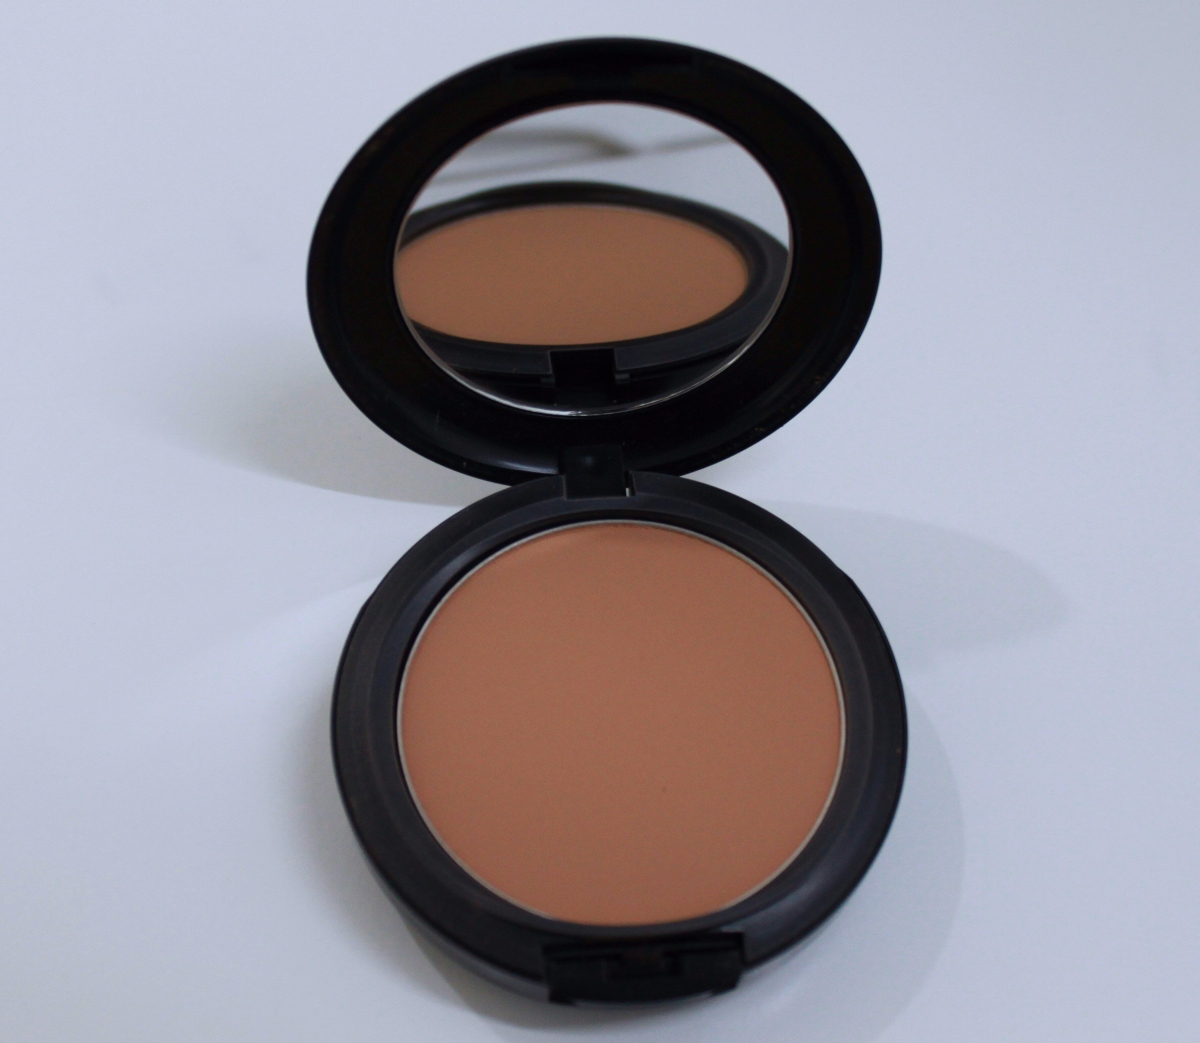 Review: MAC Studio Fix Powder Foundation